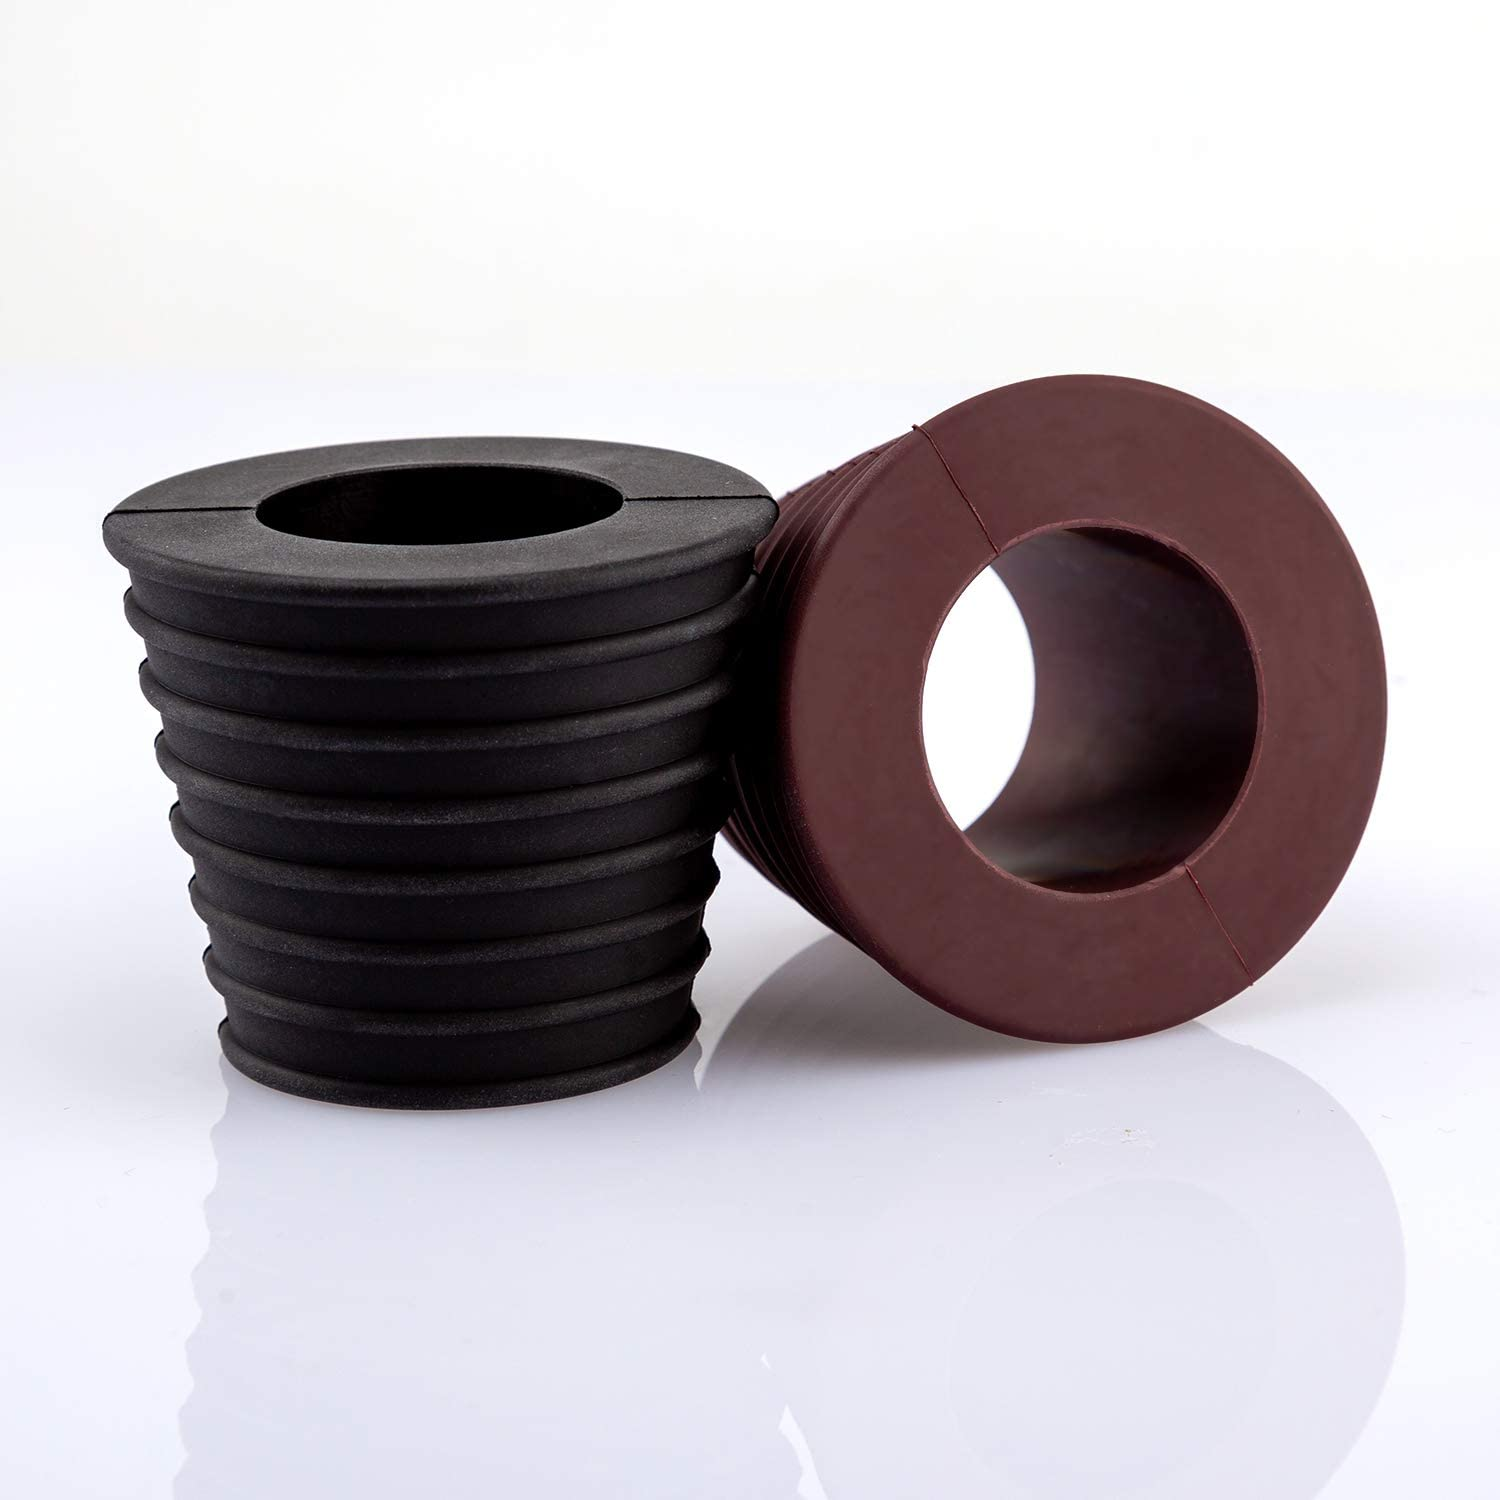 Dark Brown and Black AIEX 1.9 to 2.7 inch 2pcs Umbrella Cone Wedge Plug for Patio Table Hole Opening Umbrella Pole Diameter 1.5 Inch// 38mm